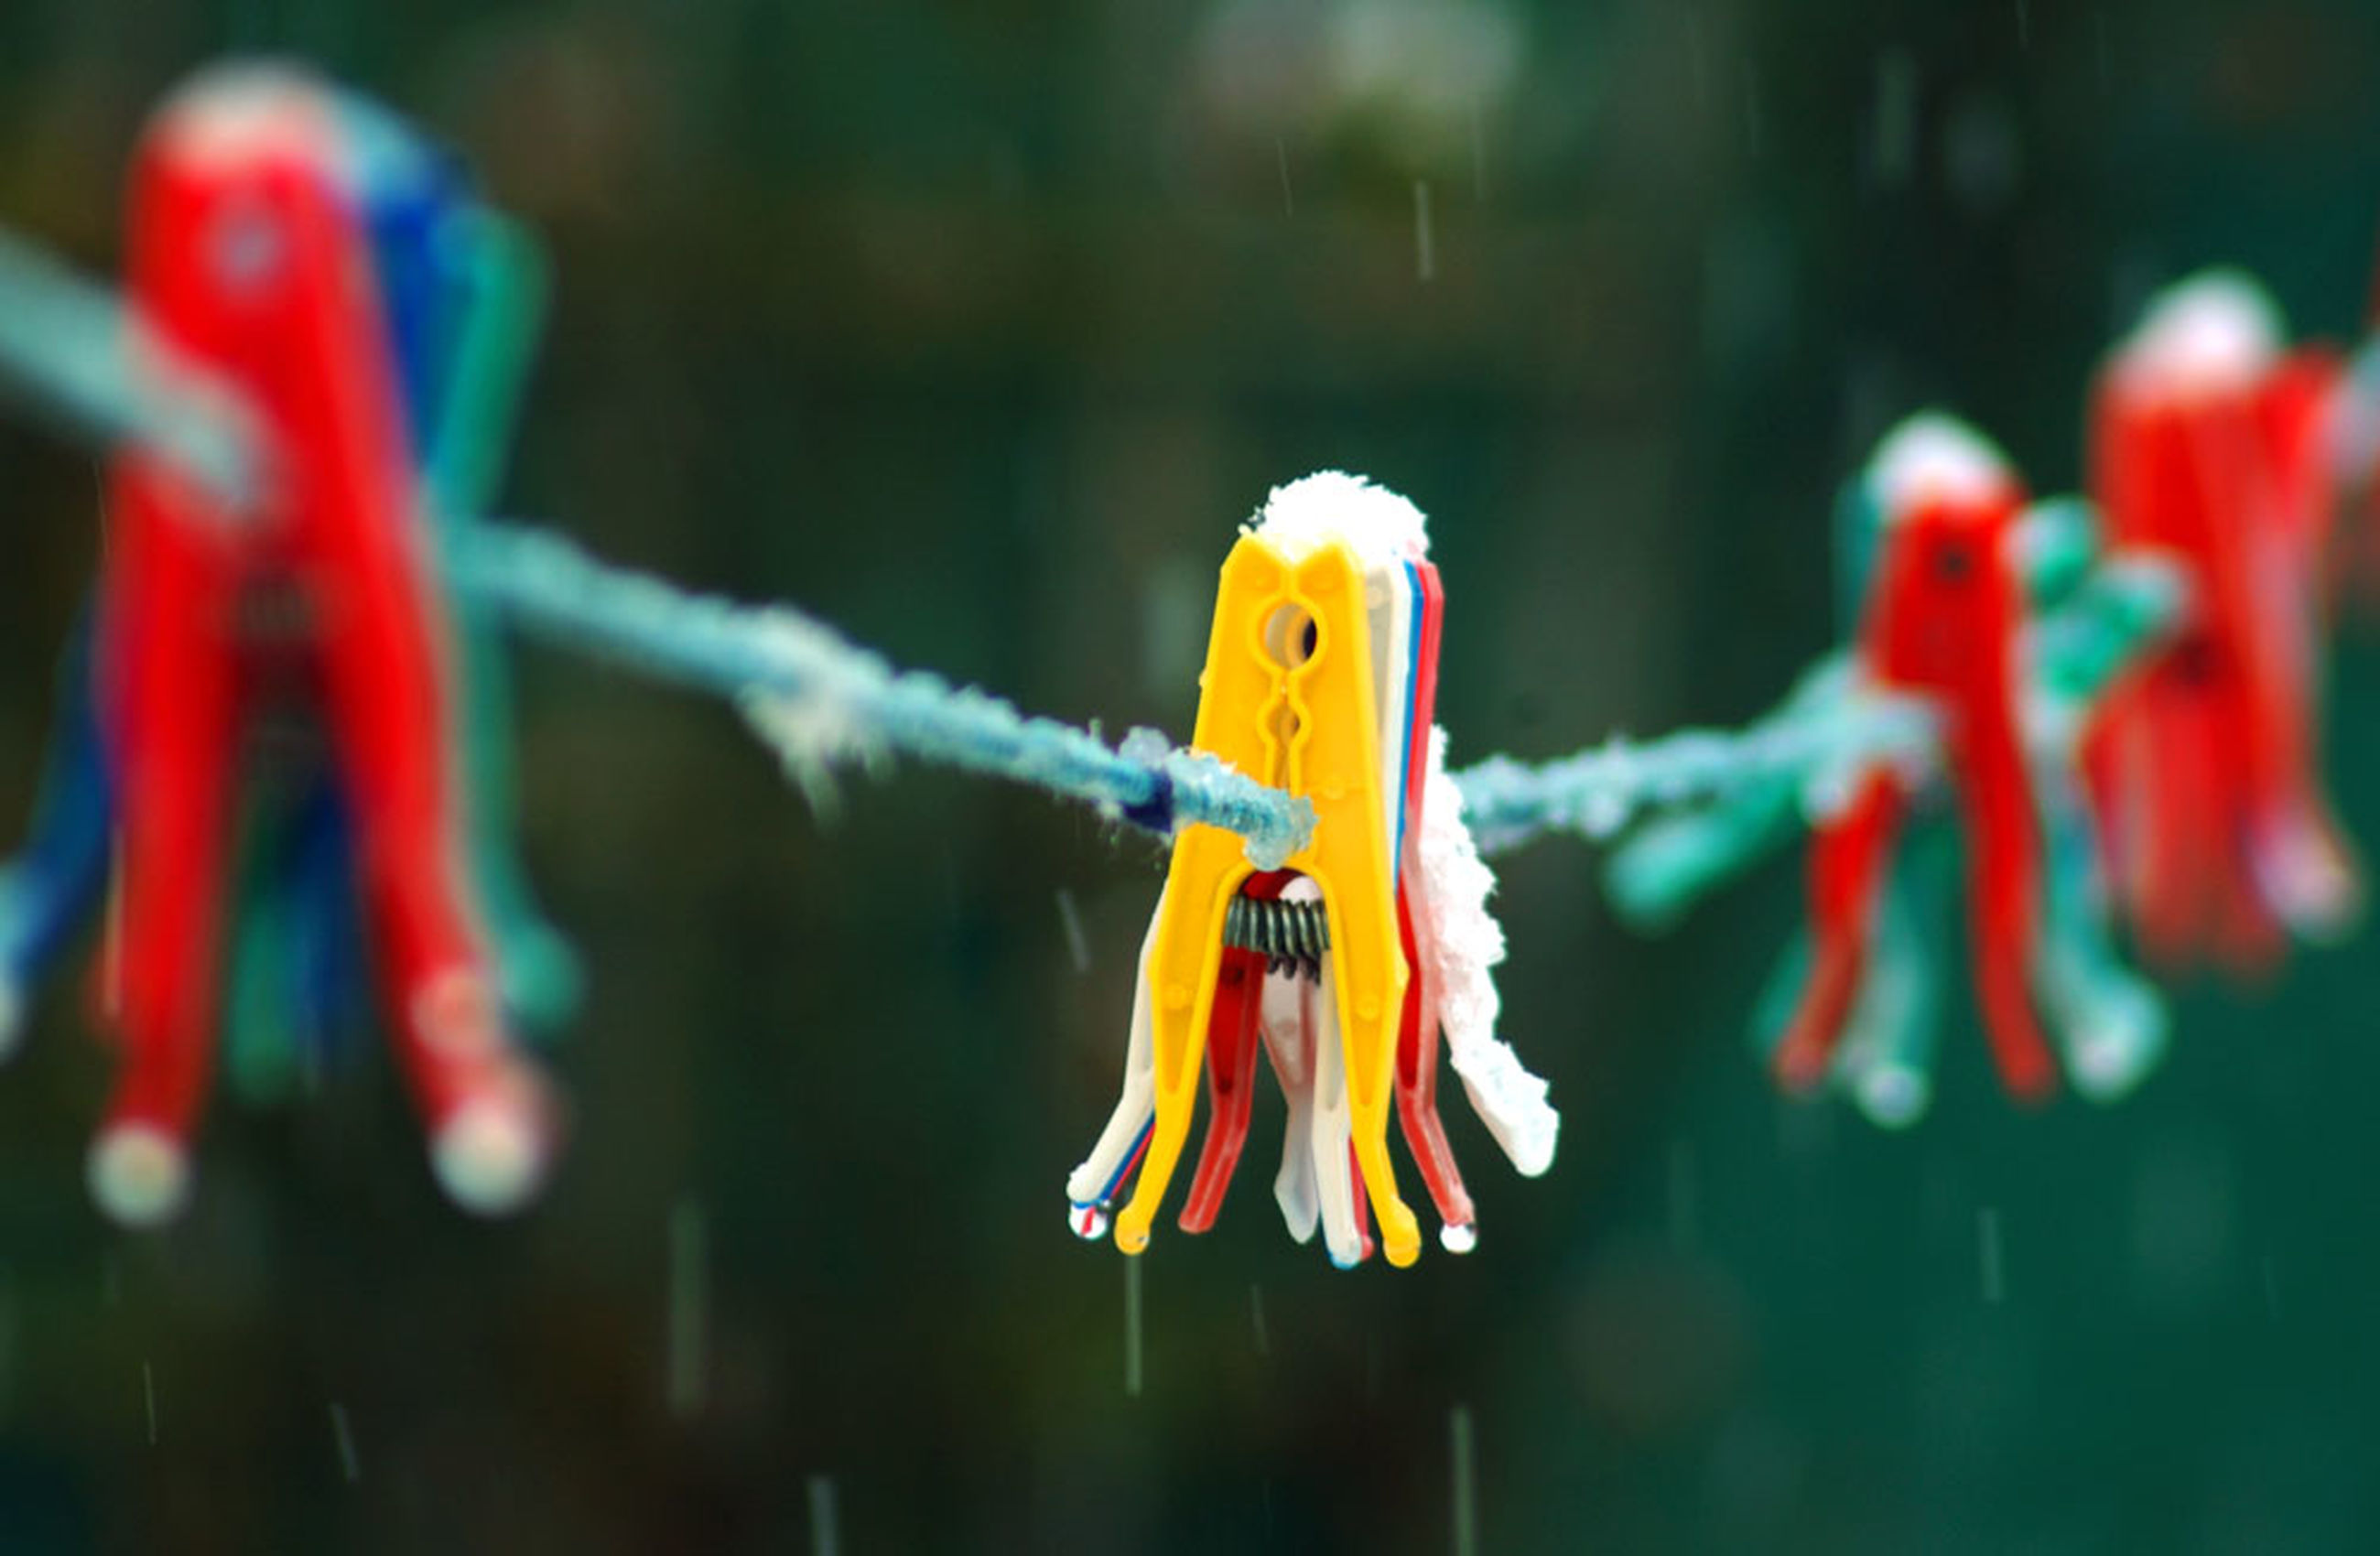 focus on foreground, animal, no people, close-up, animal themes, fish, yellow, hanging, vertebrate, rope, nature, multi colored, representation, selective focus, animal representation, clothesline, clothespin, day, in a row, underwater